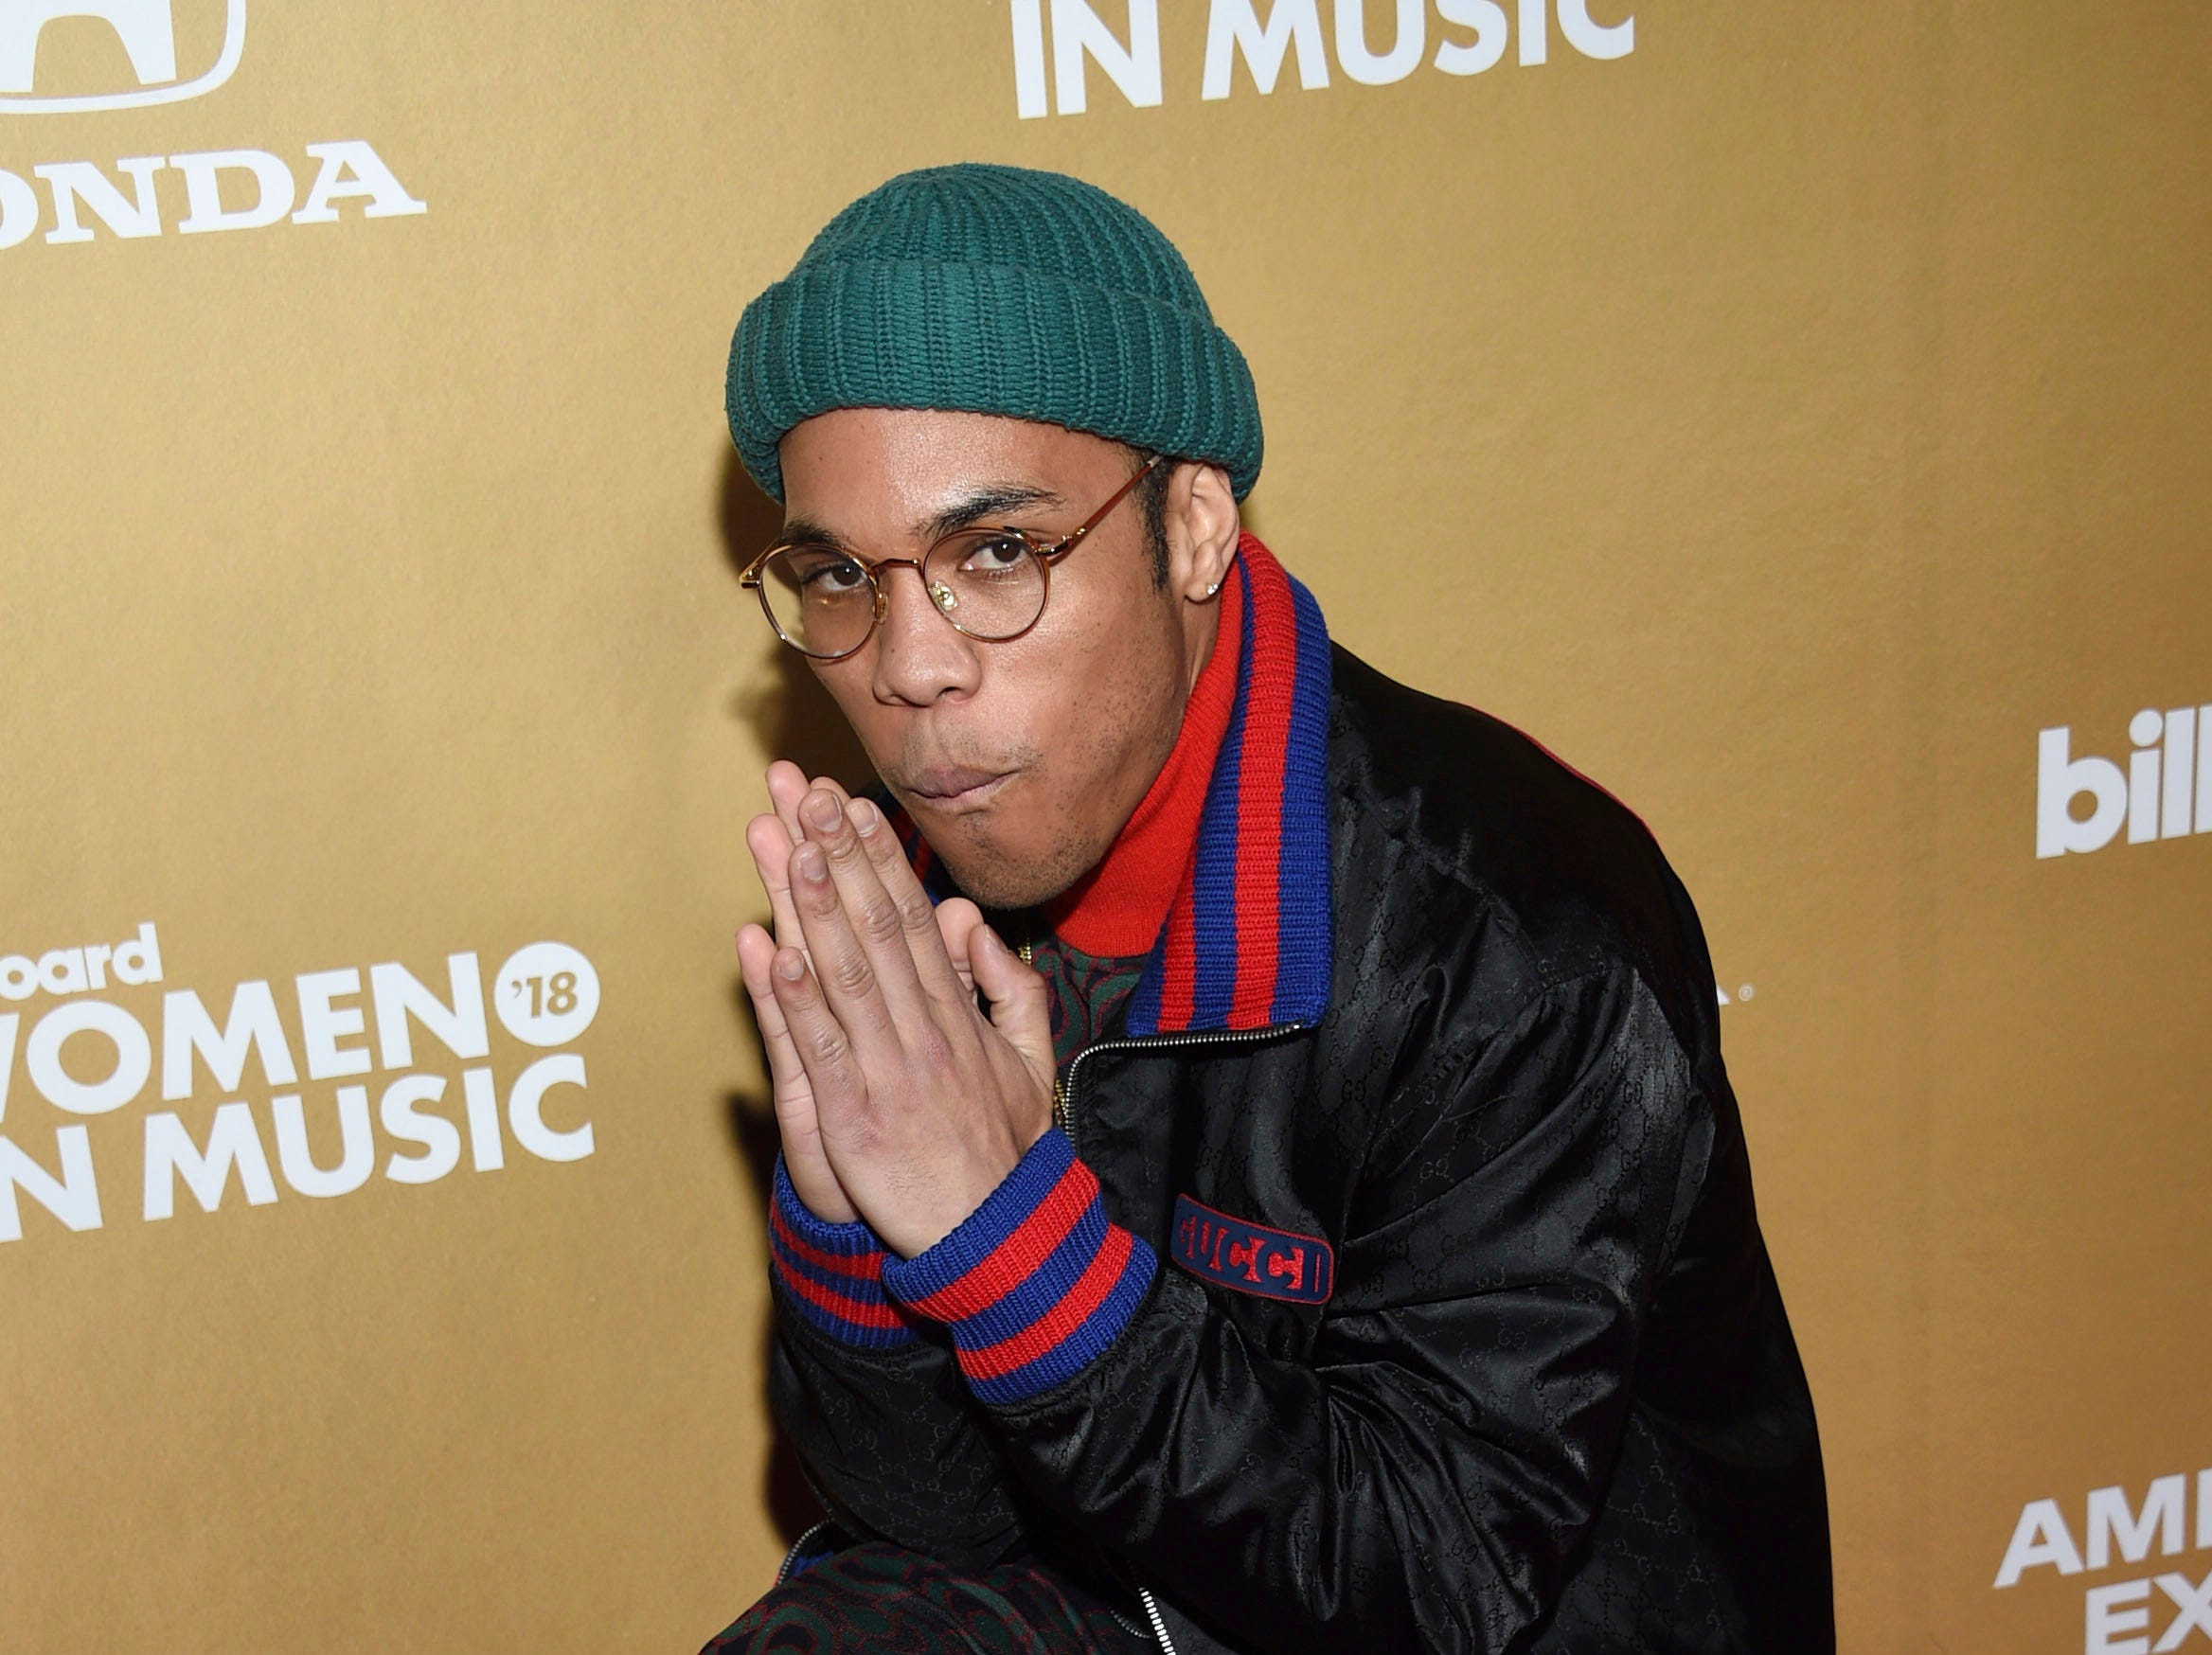 Anderson .Paak attends the 13th annual Billboard Women in Music event at Pier 36 on Thursday, Dec. 6, 2018, in New York. (Photo by Evan Agostini/Invision/AP) ORG XMIT: CABR105